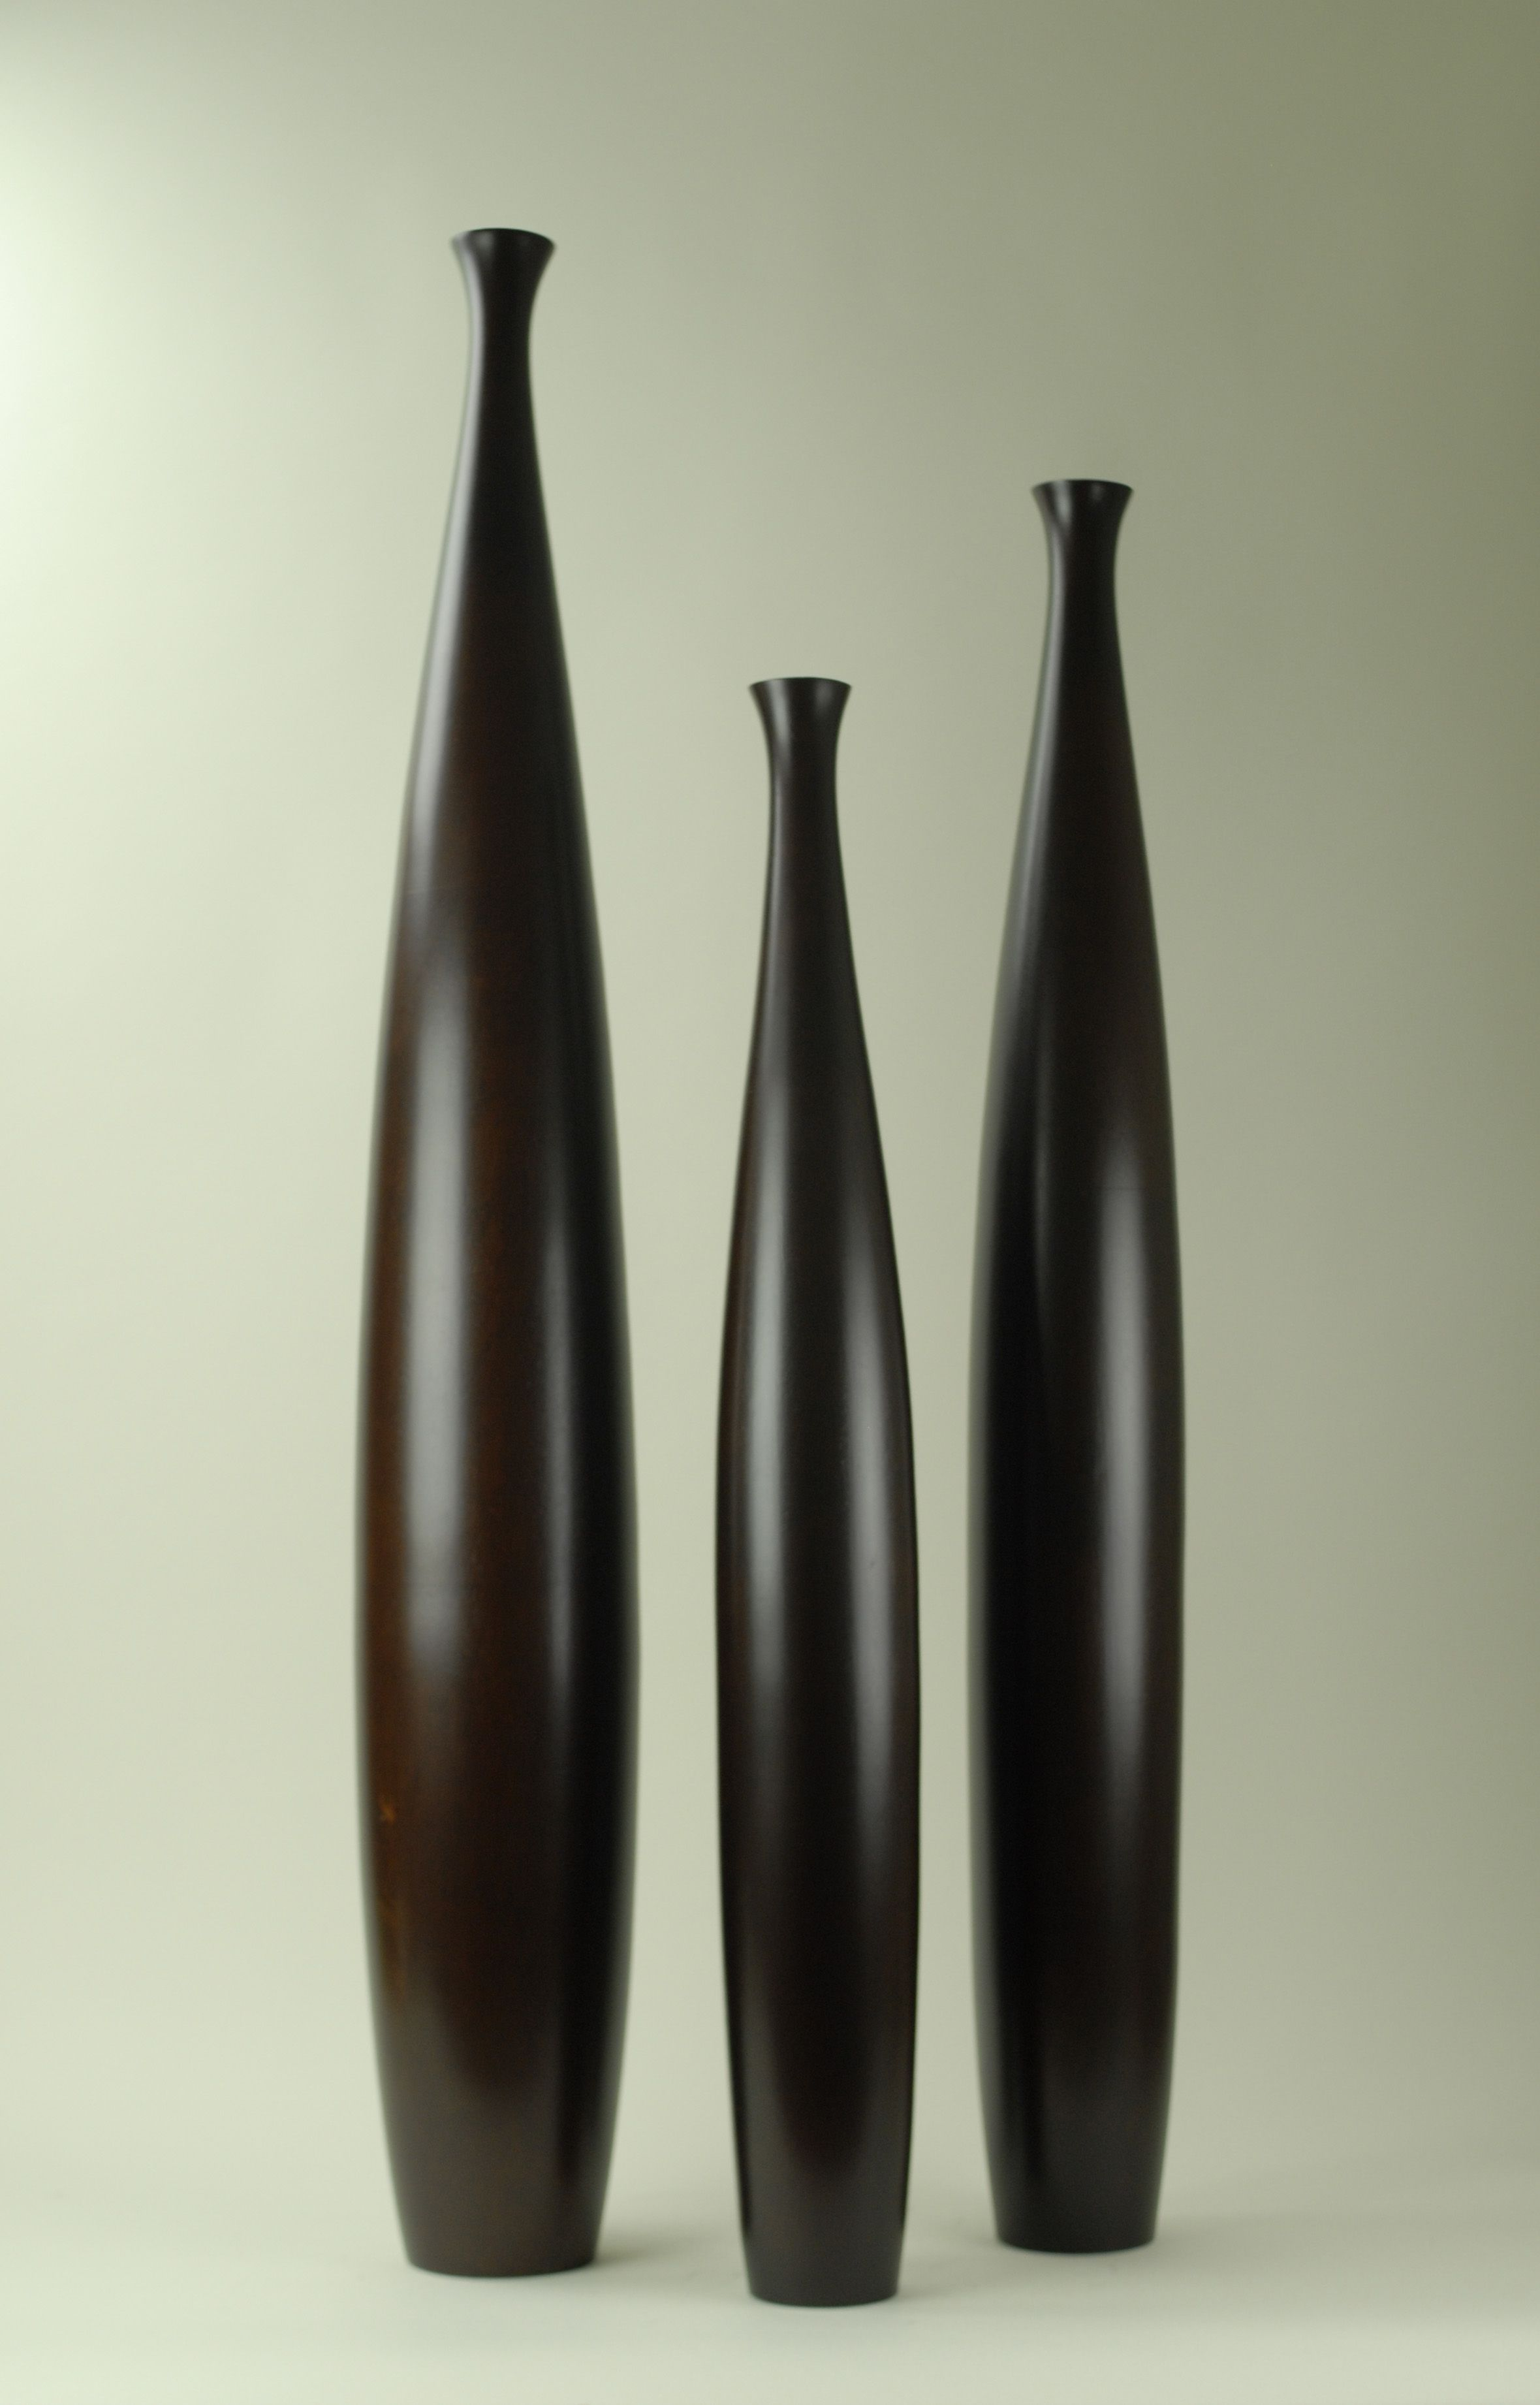 decorating tips with contemporary vases  httpgusg  - decorating tips with contemporary vases  httpgusgleesvilletaproomcom